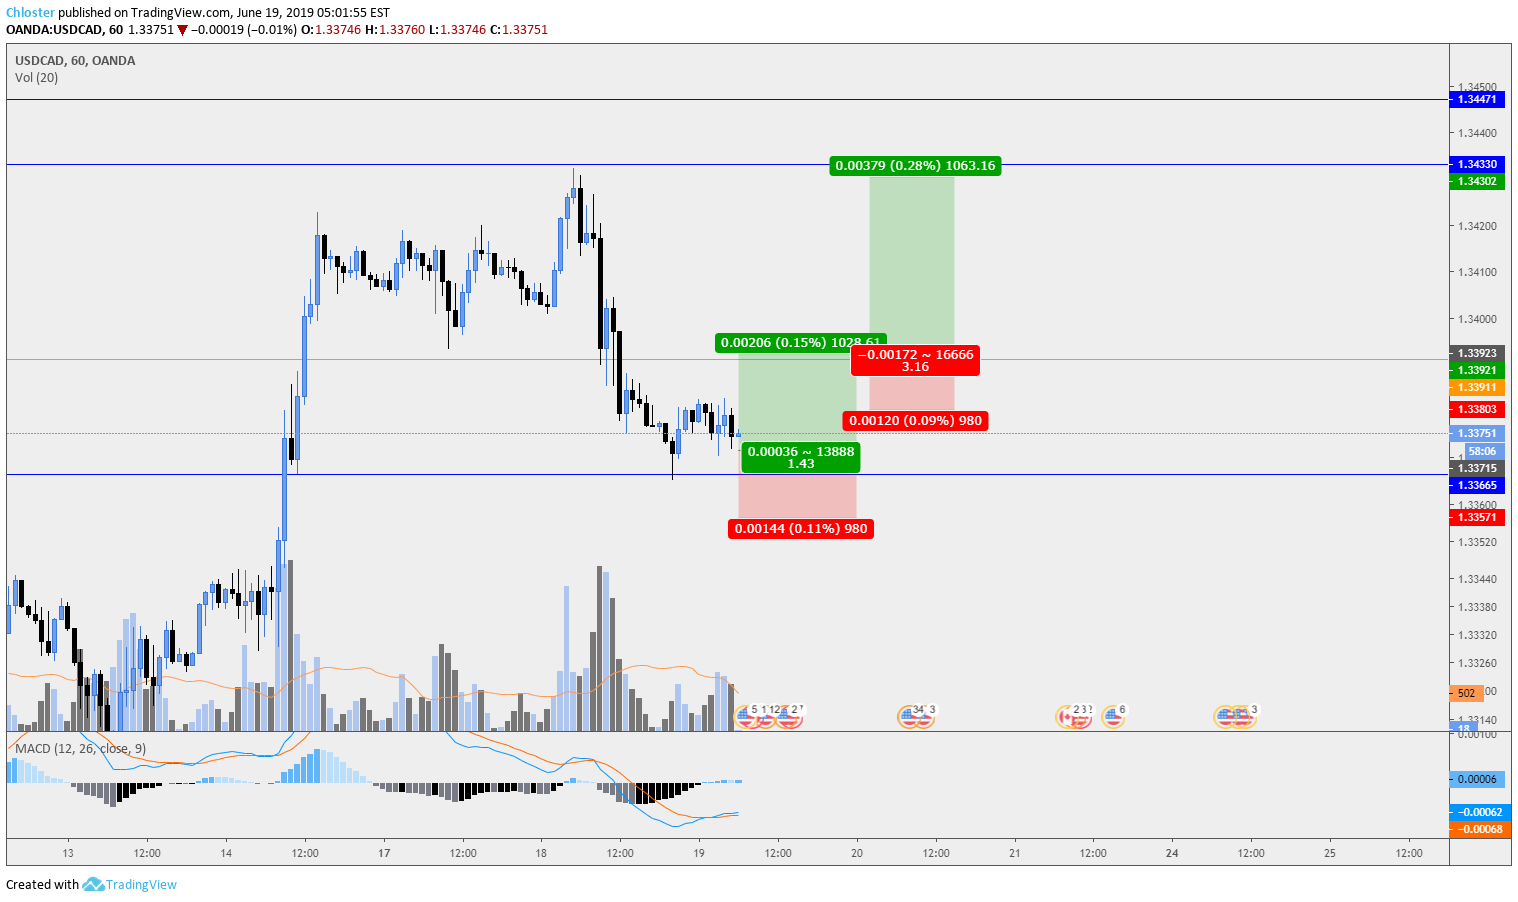 USD/CAD Long Setups for OANDA:USDCAD by Chloster — TradingView